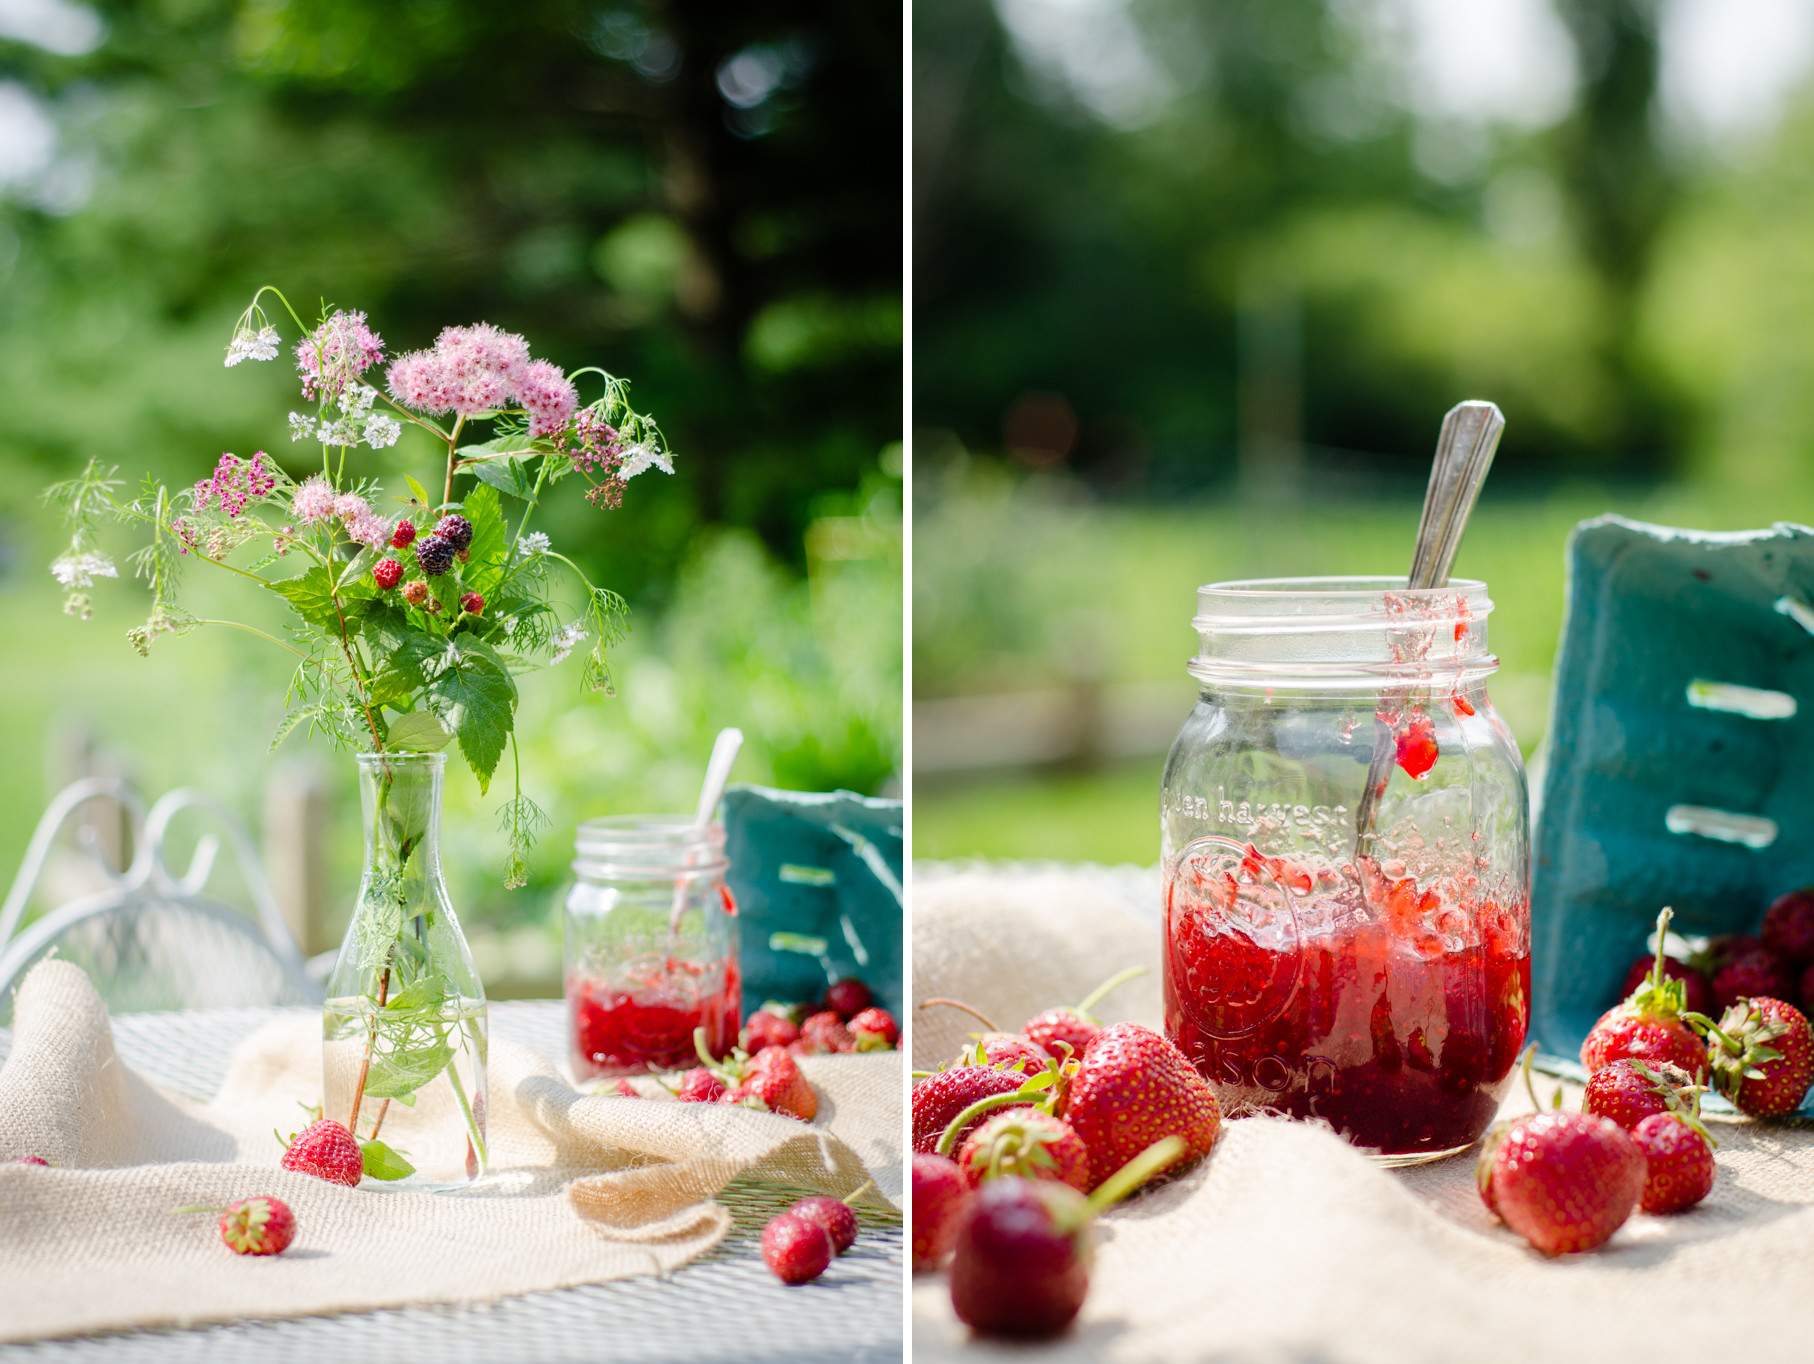 Strawberry Jam & Flowers